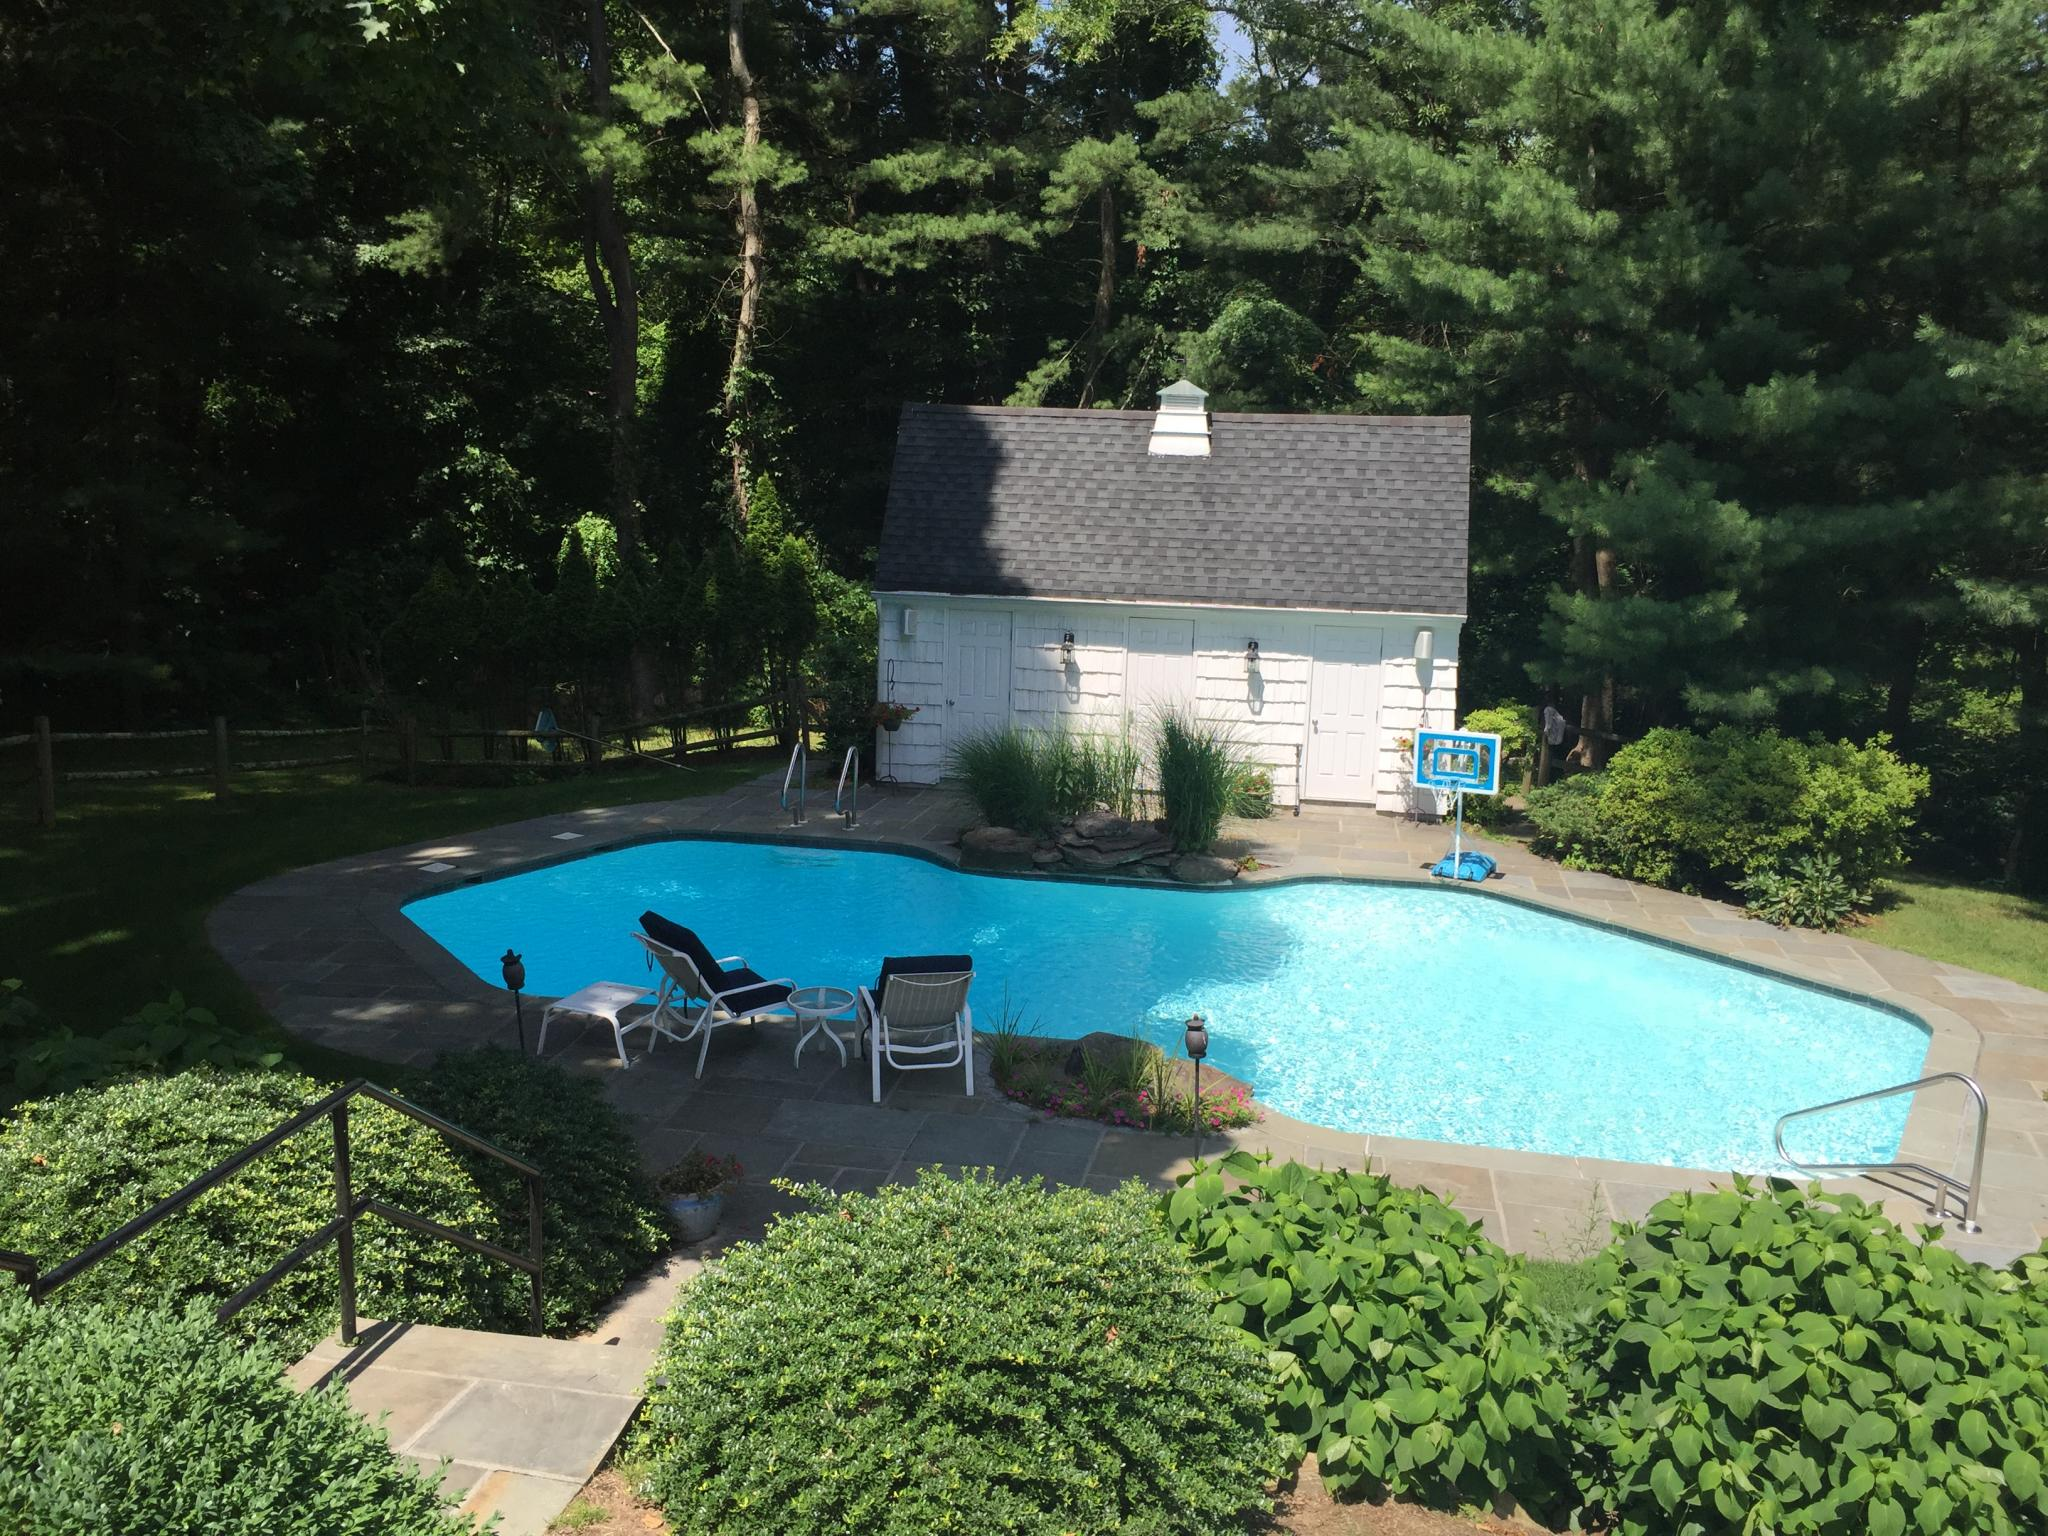 6 valley pl harrison ny 10528 estimate and home details trulia